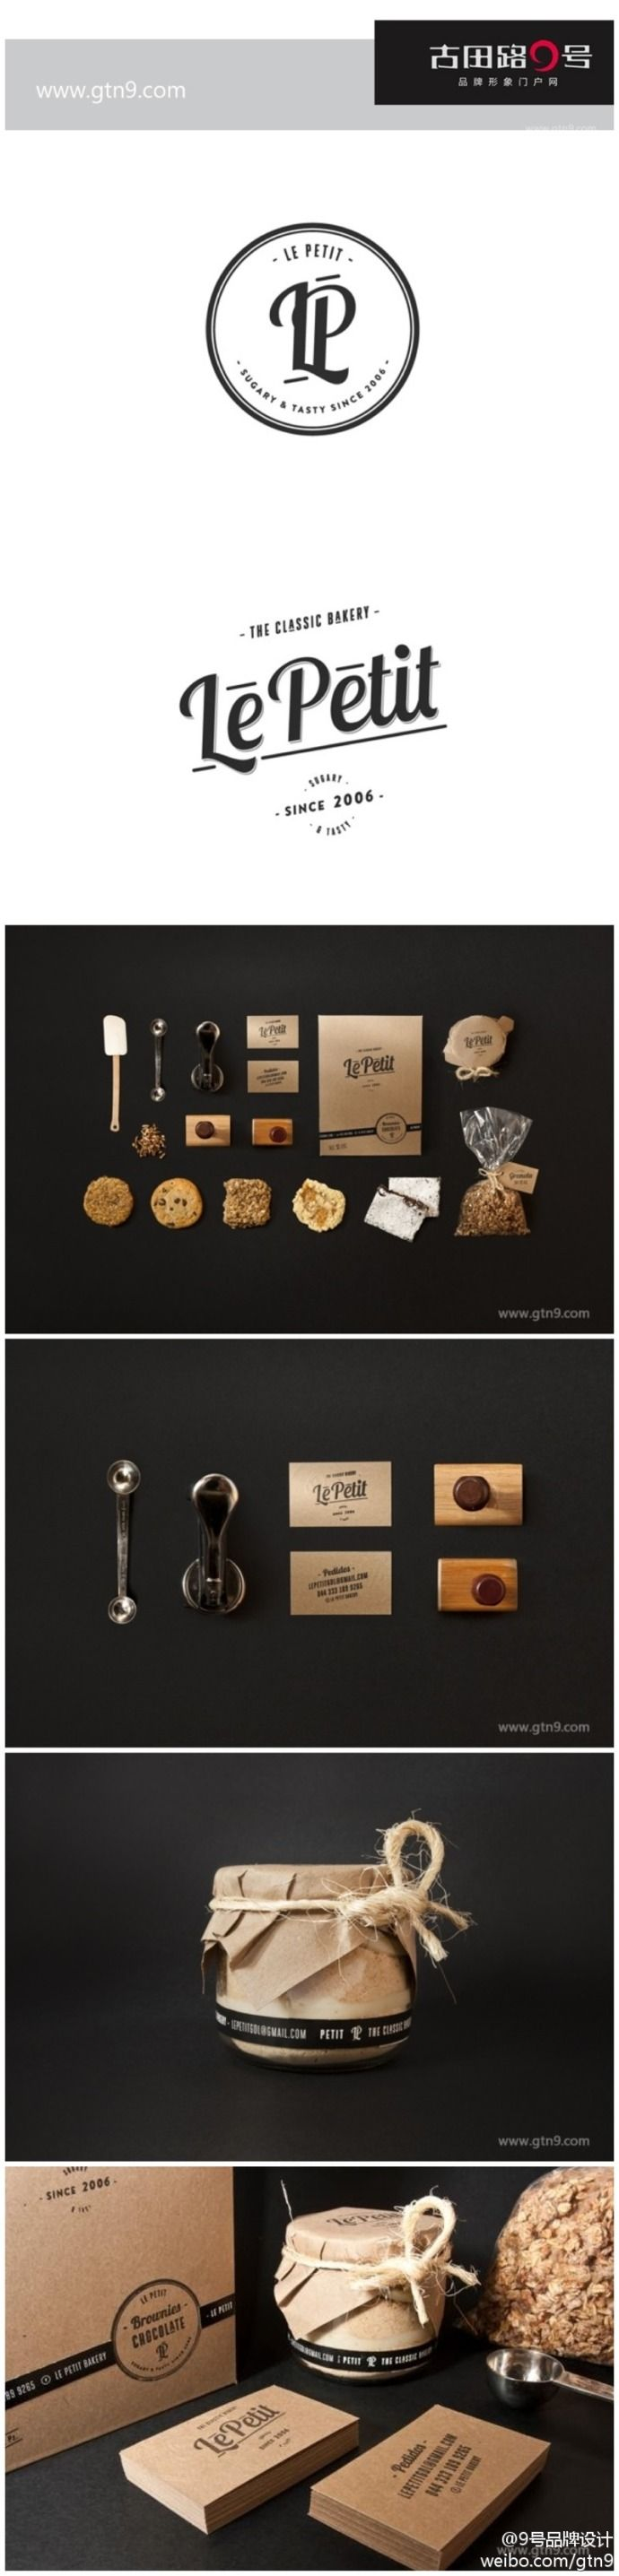 identity / Le Petit Bakery | #stationary #corporate #design #corporatedesign #identity #branding #marketing < repinned by www.BlickeDeeler.de | Take a look at www.LogoGestaltung-Hamburg.de